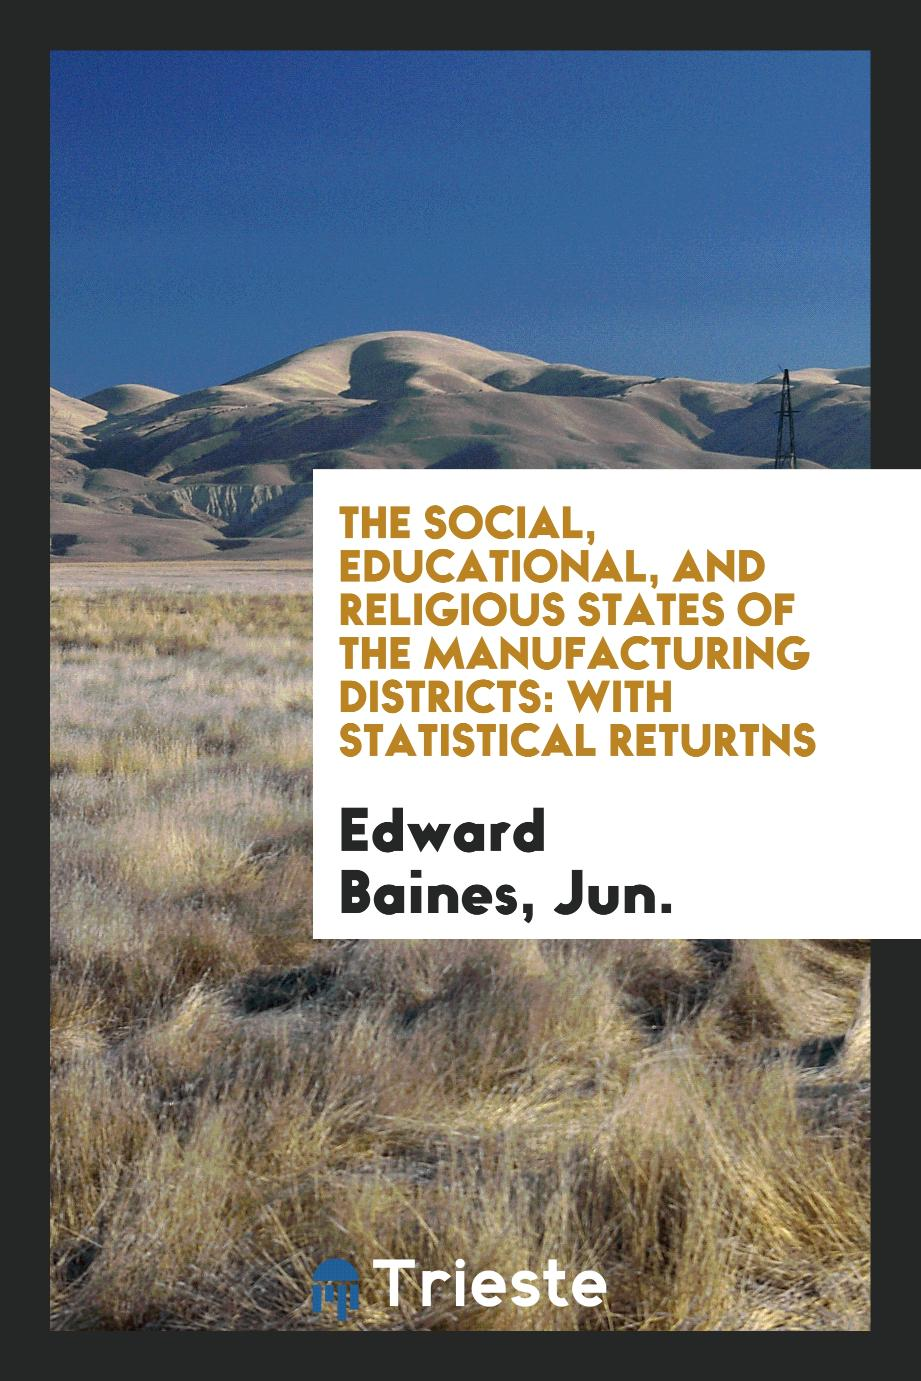 The Social, Educational, and Religious States of the Manufacturing Districts: With Statistical Returns